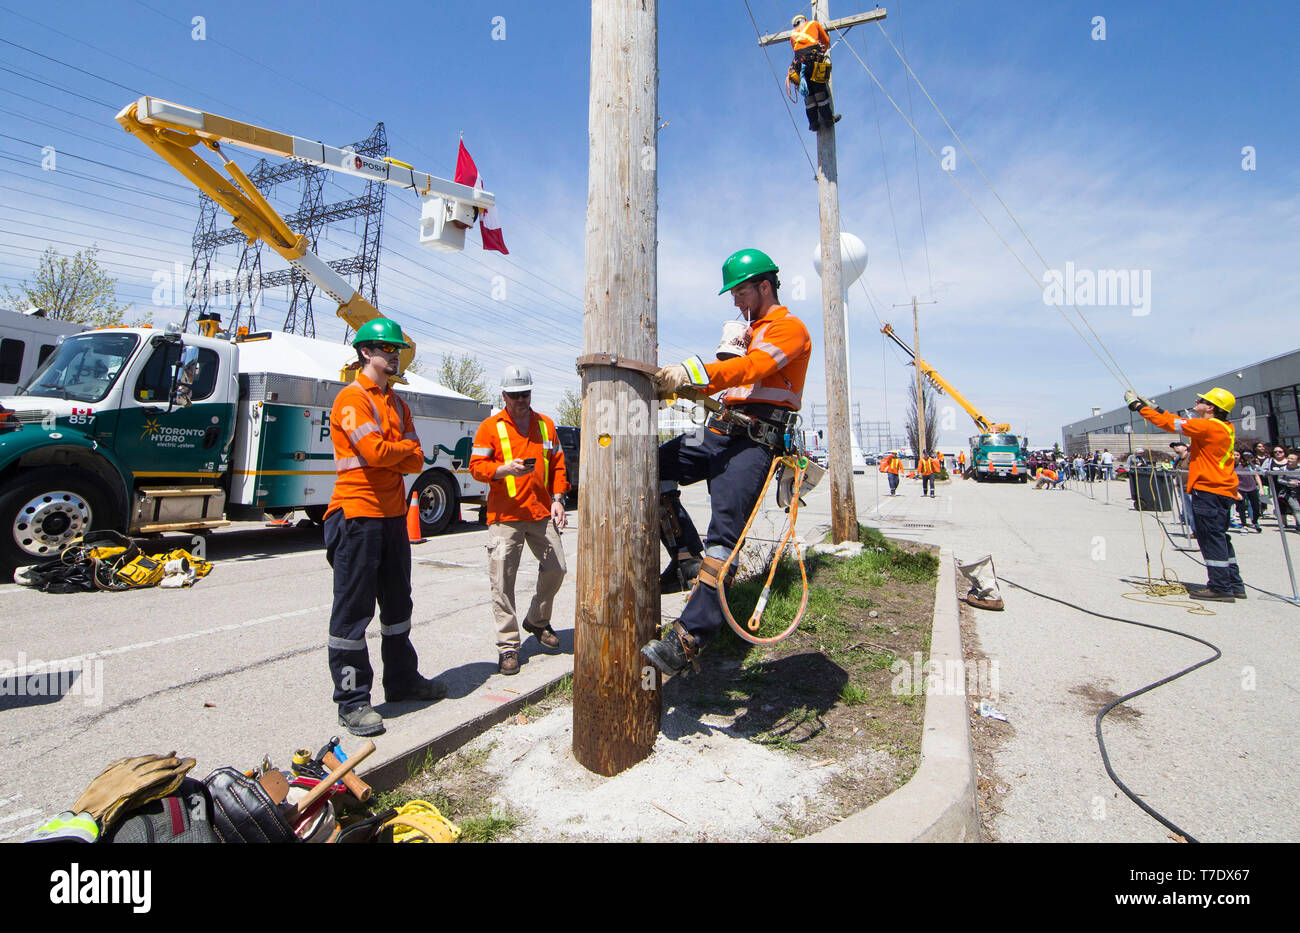 Toronto, Canada. 6th May, 2019. A student (C) competes during the power line technician sector of the 2019 Skills Ontario Competition in Toronto, Canada, on May 6, 2019. The 2019 Skills Ontario Competition kicked off here on Monday, attracting more than 2,400 competitors. A broad range of skills and careers are represented at the three-day competition from across the manufacturing, transportation, construction, service, and technology sectors. Credit: Zou Zheng/Xinhua/Alamy Live News - Stock Image